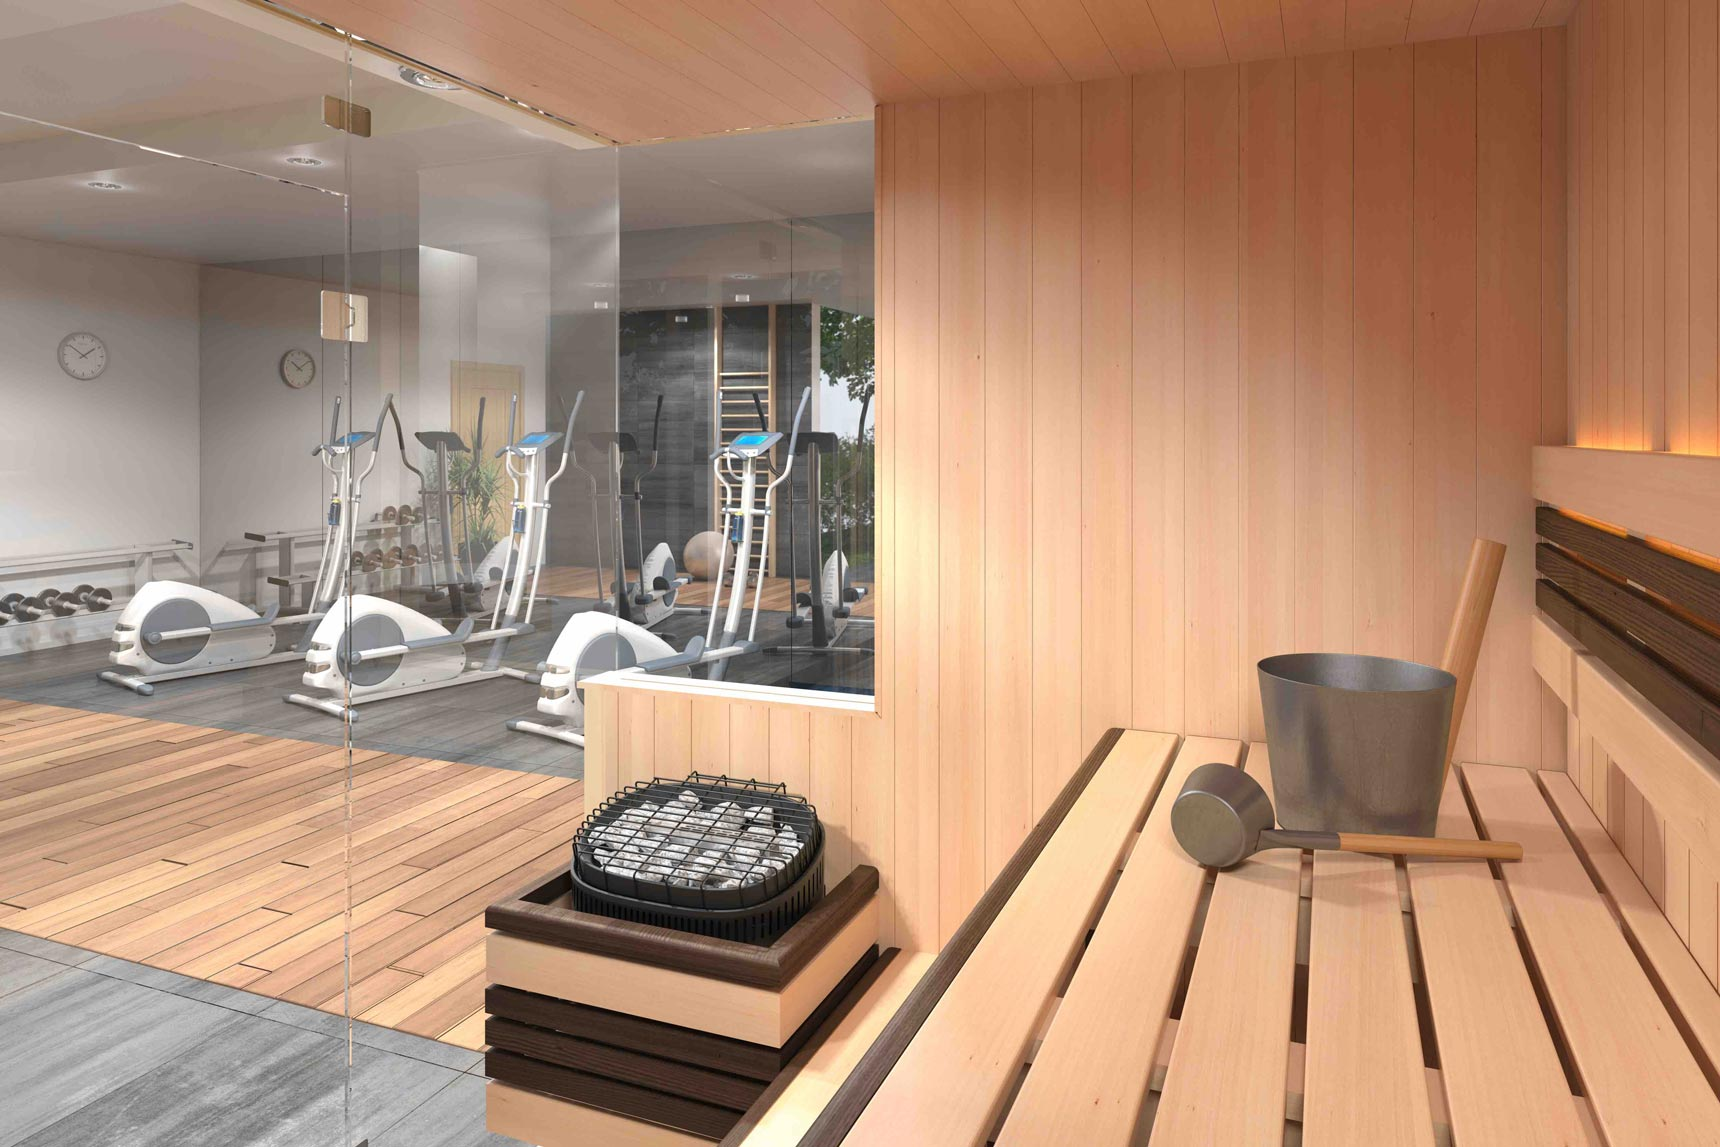 sauna with exercise equipment